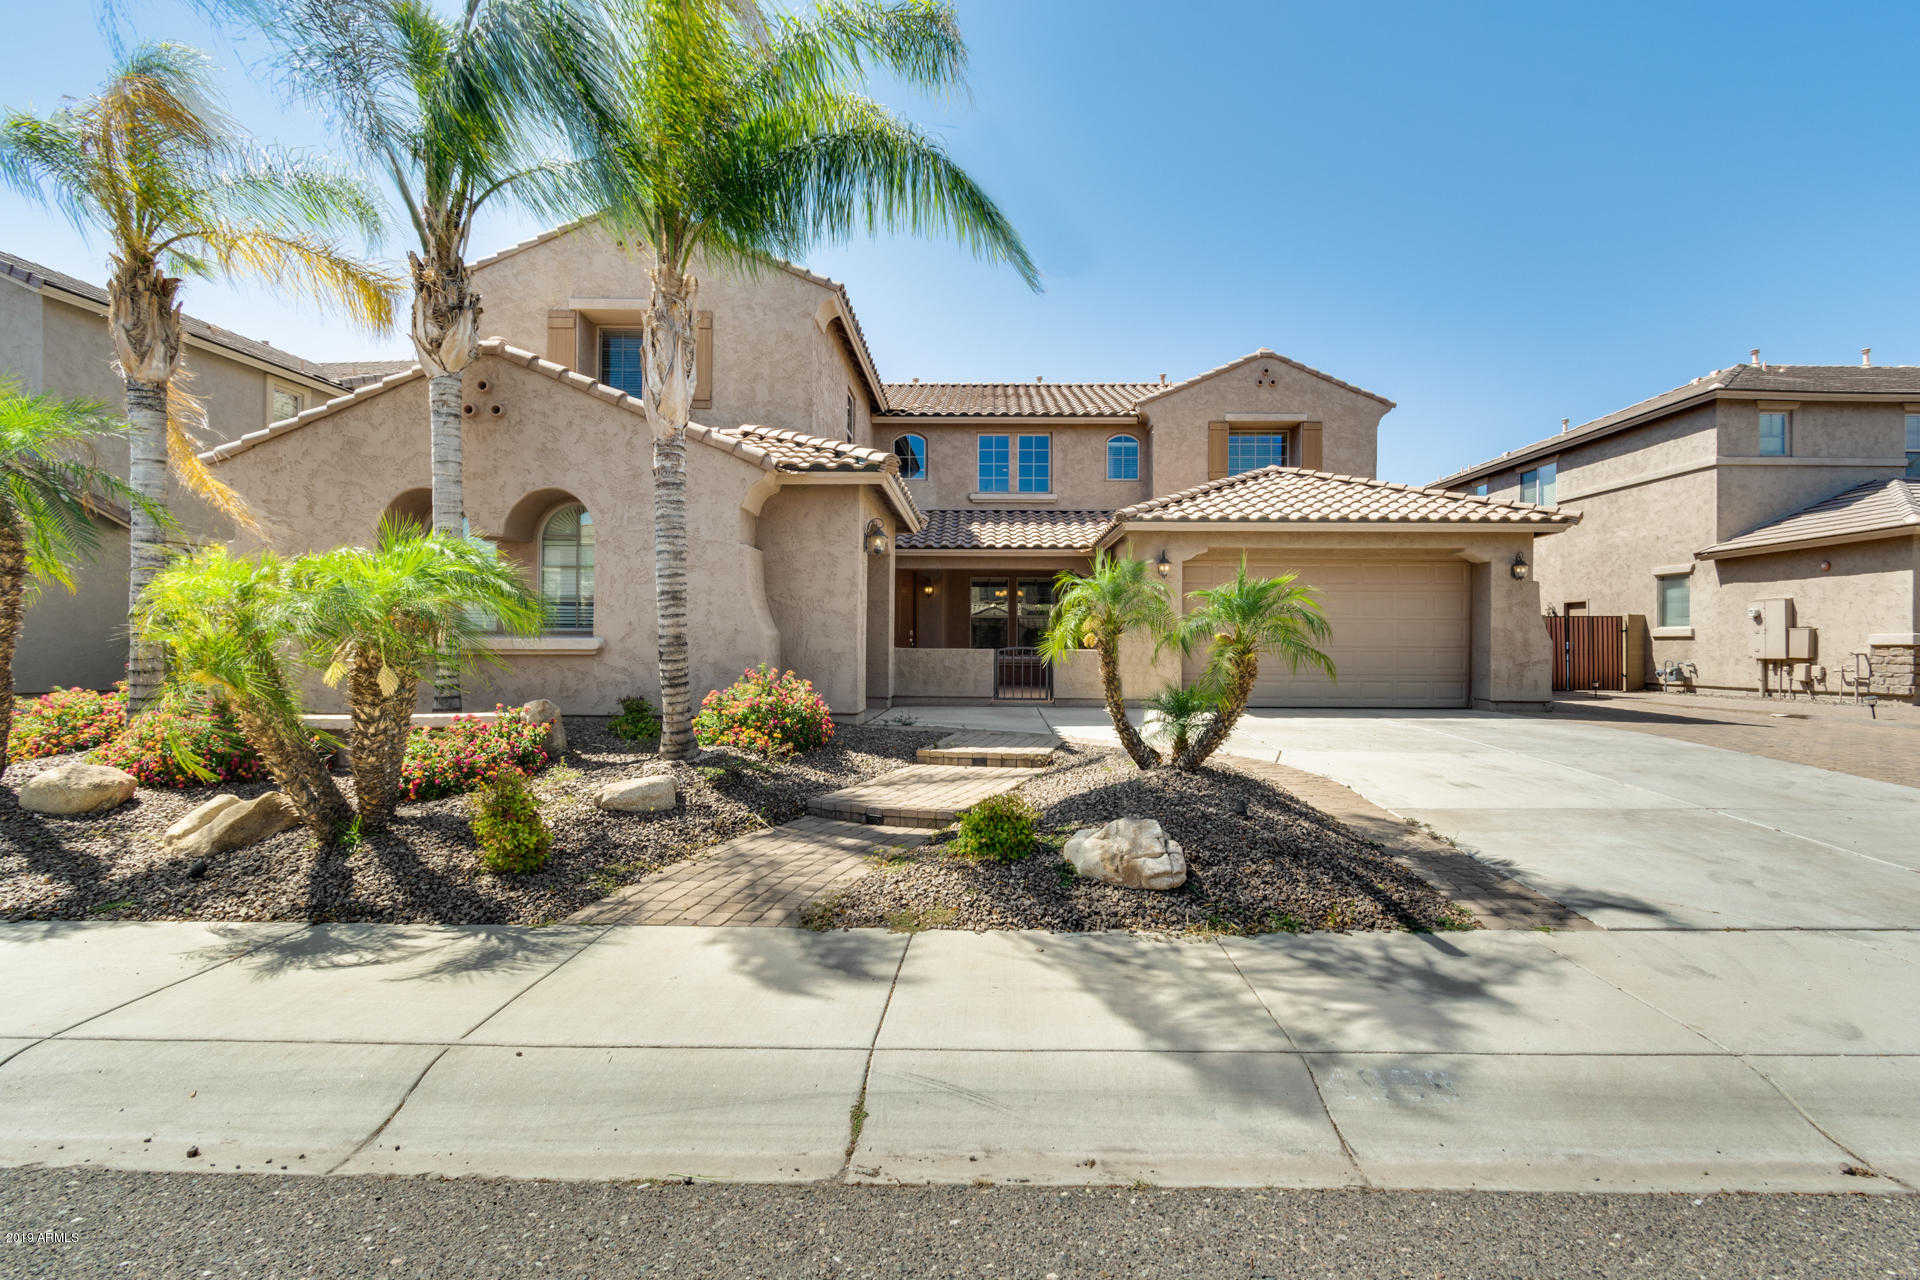 $552,900 - 5Br/5Ba - Home for Sale in Stetson Valley Parcels 7 8 9 10, Phoenix